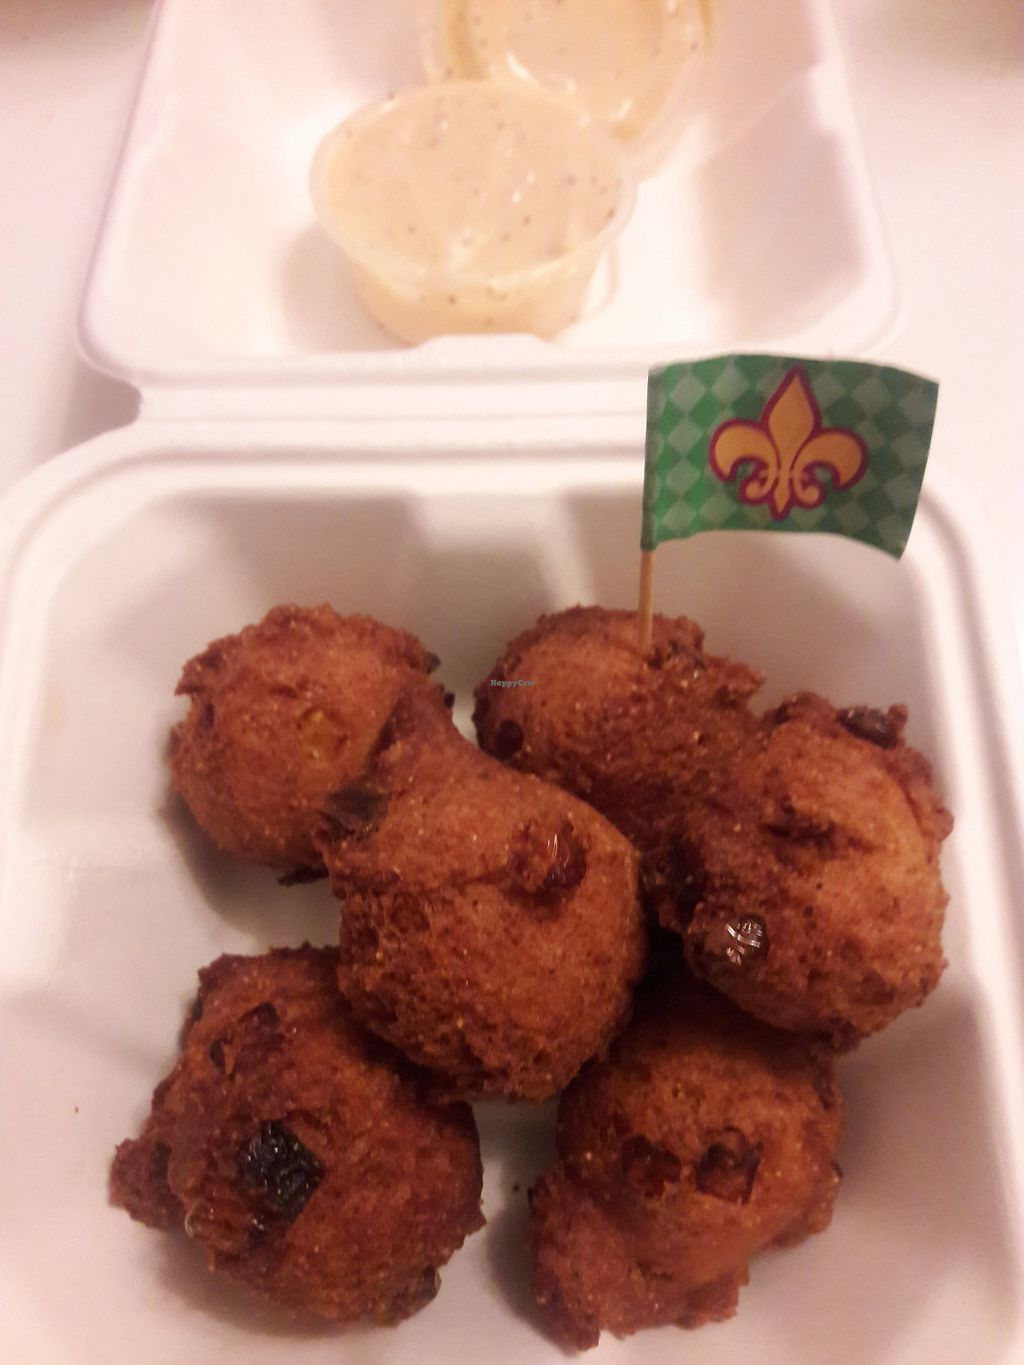 """Photo of Krimsey's Cajun Kitchen  by <a href=""""/members/profile/Sonja%20and%20Dirk"""">Sonja and Dirk</a> <br/>hush puppies <br/> August 20, 2017  - <a href='/contact/abuse/image/71919/294888'>Report</a>"""